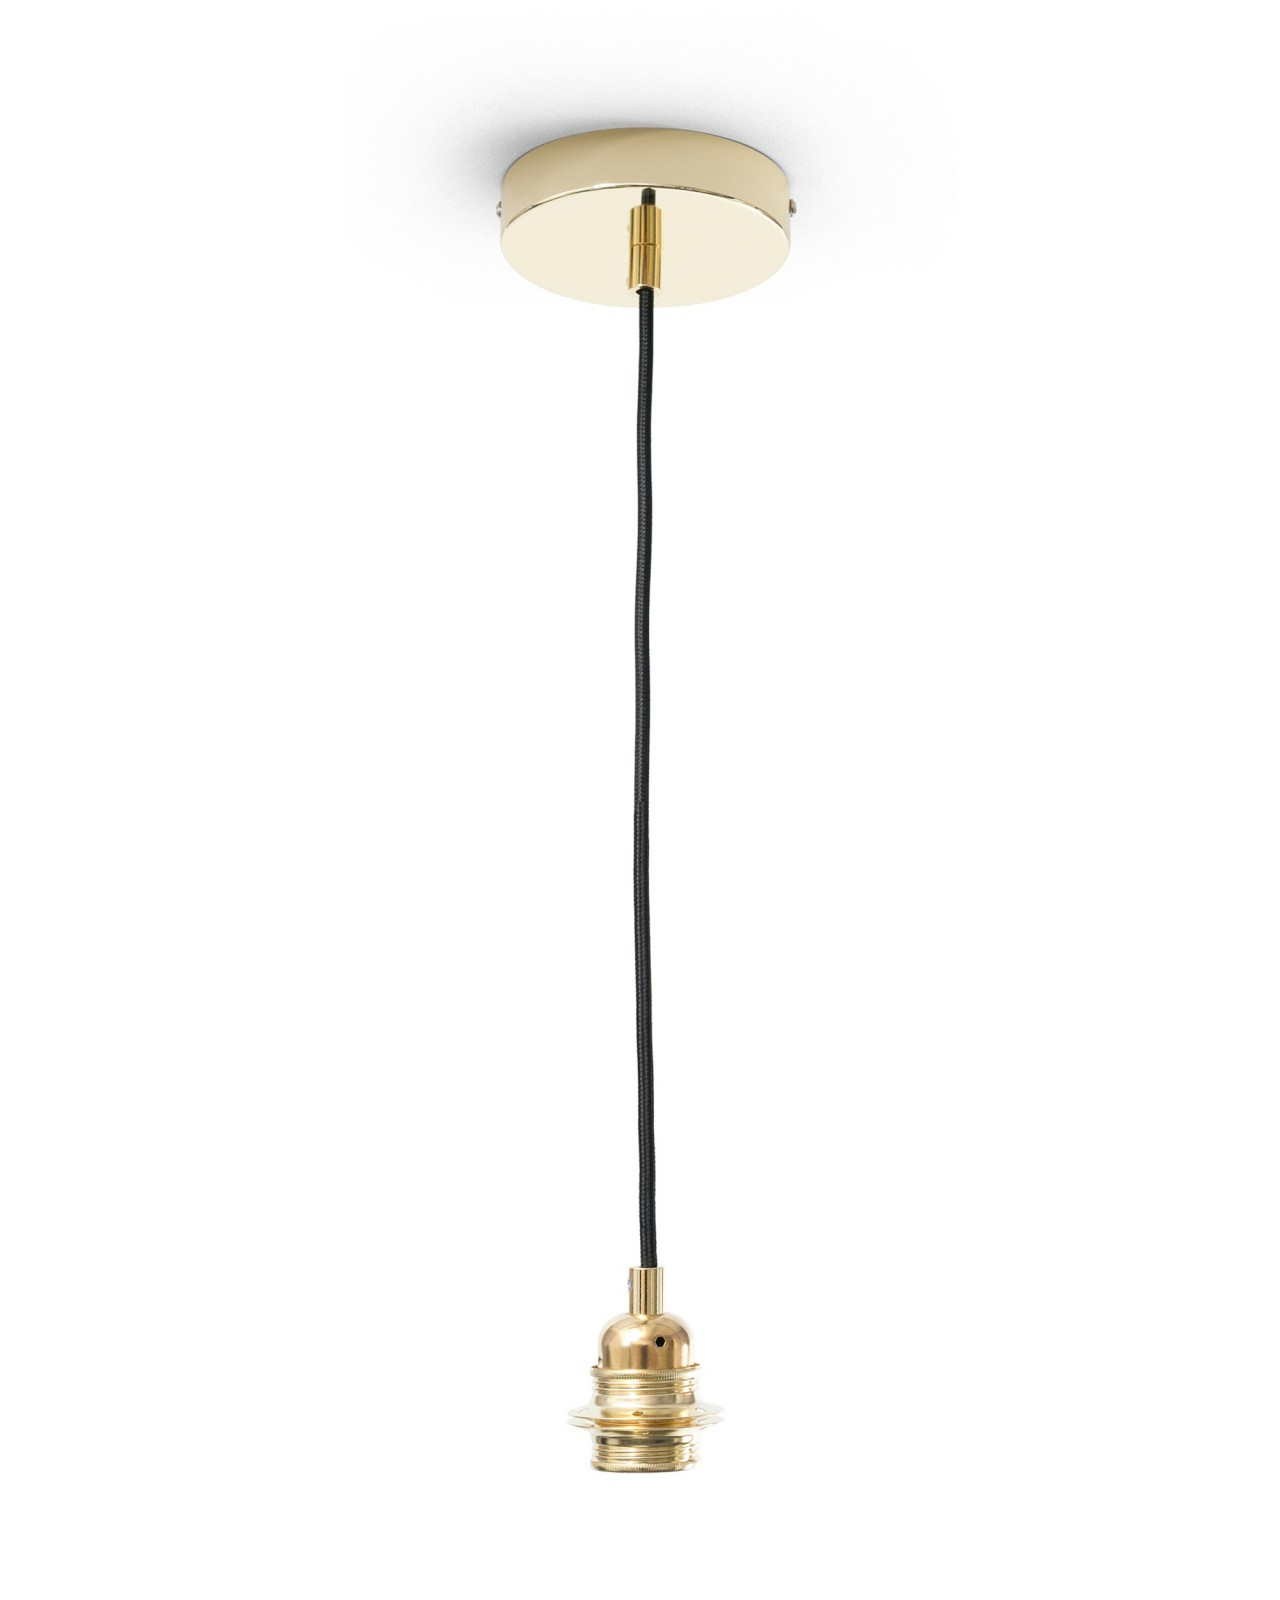 RAVENALA Dark Pendant Lamp